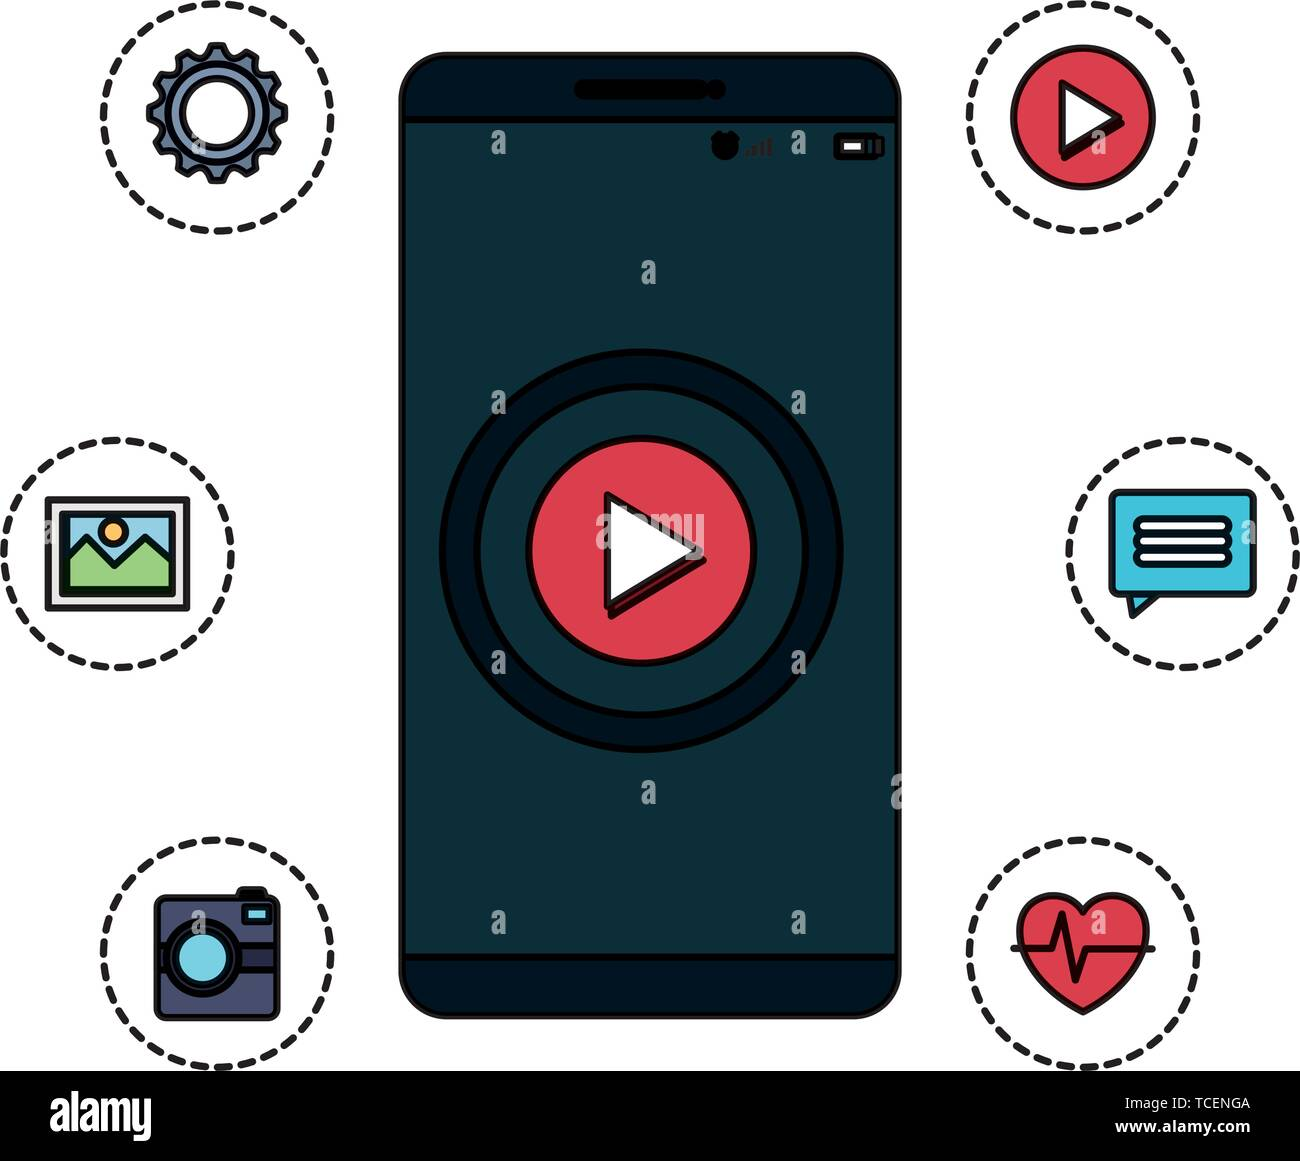 smartphone technology with play button and applications menu Stock Vector